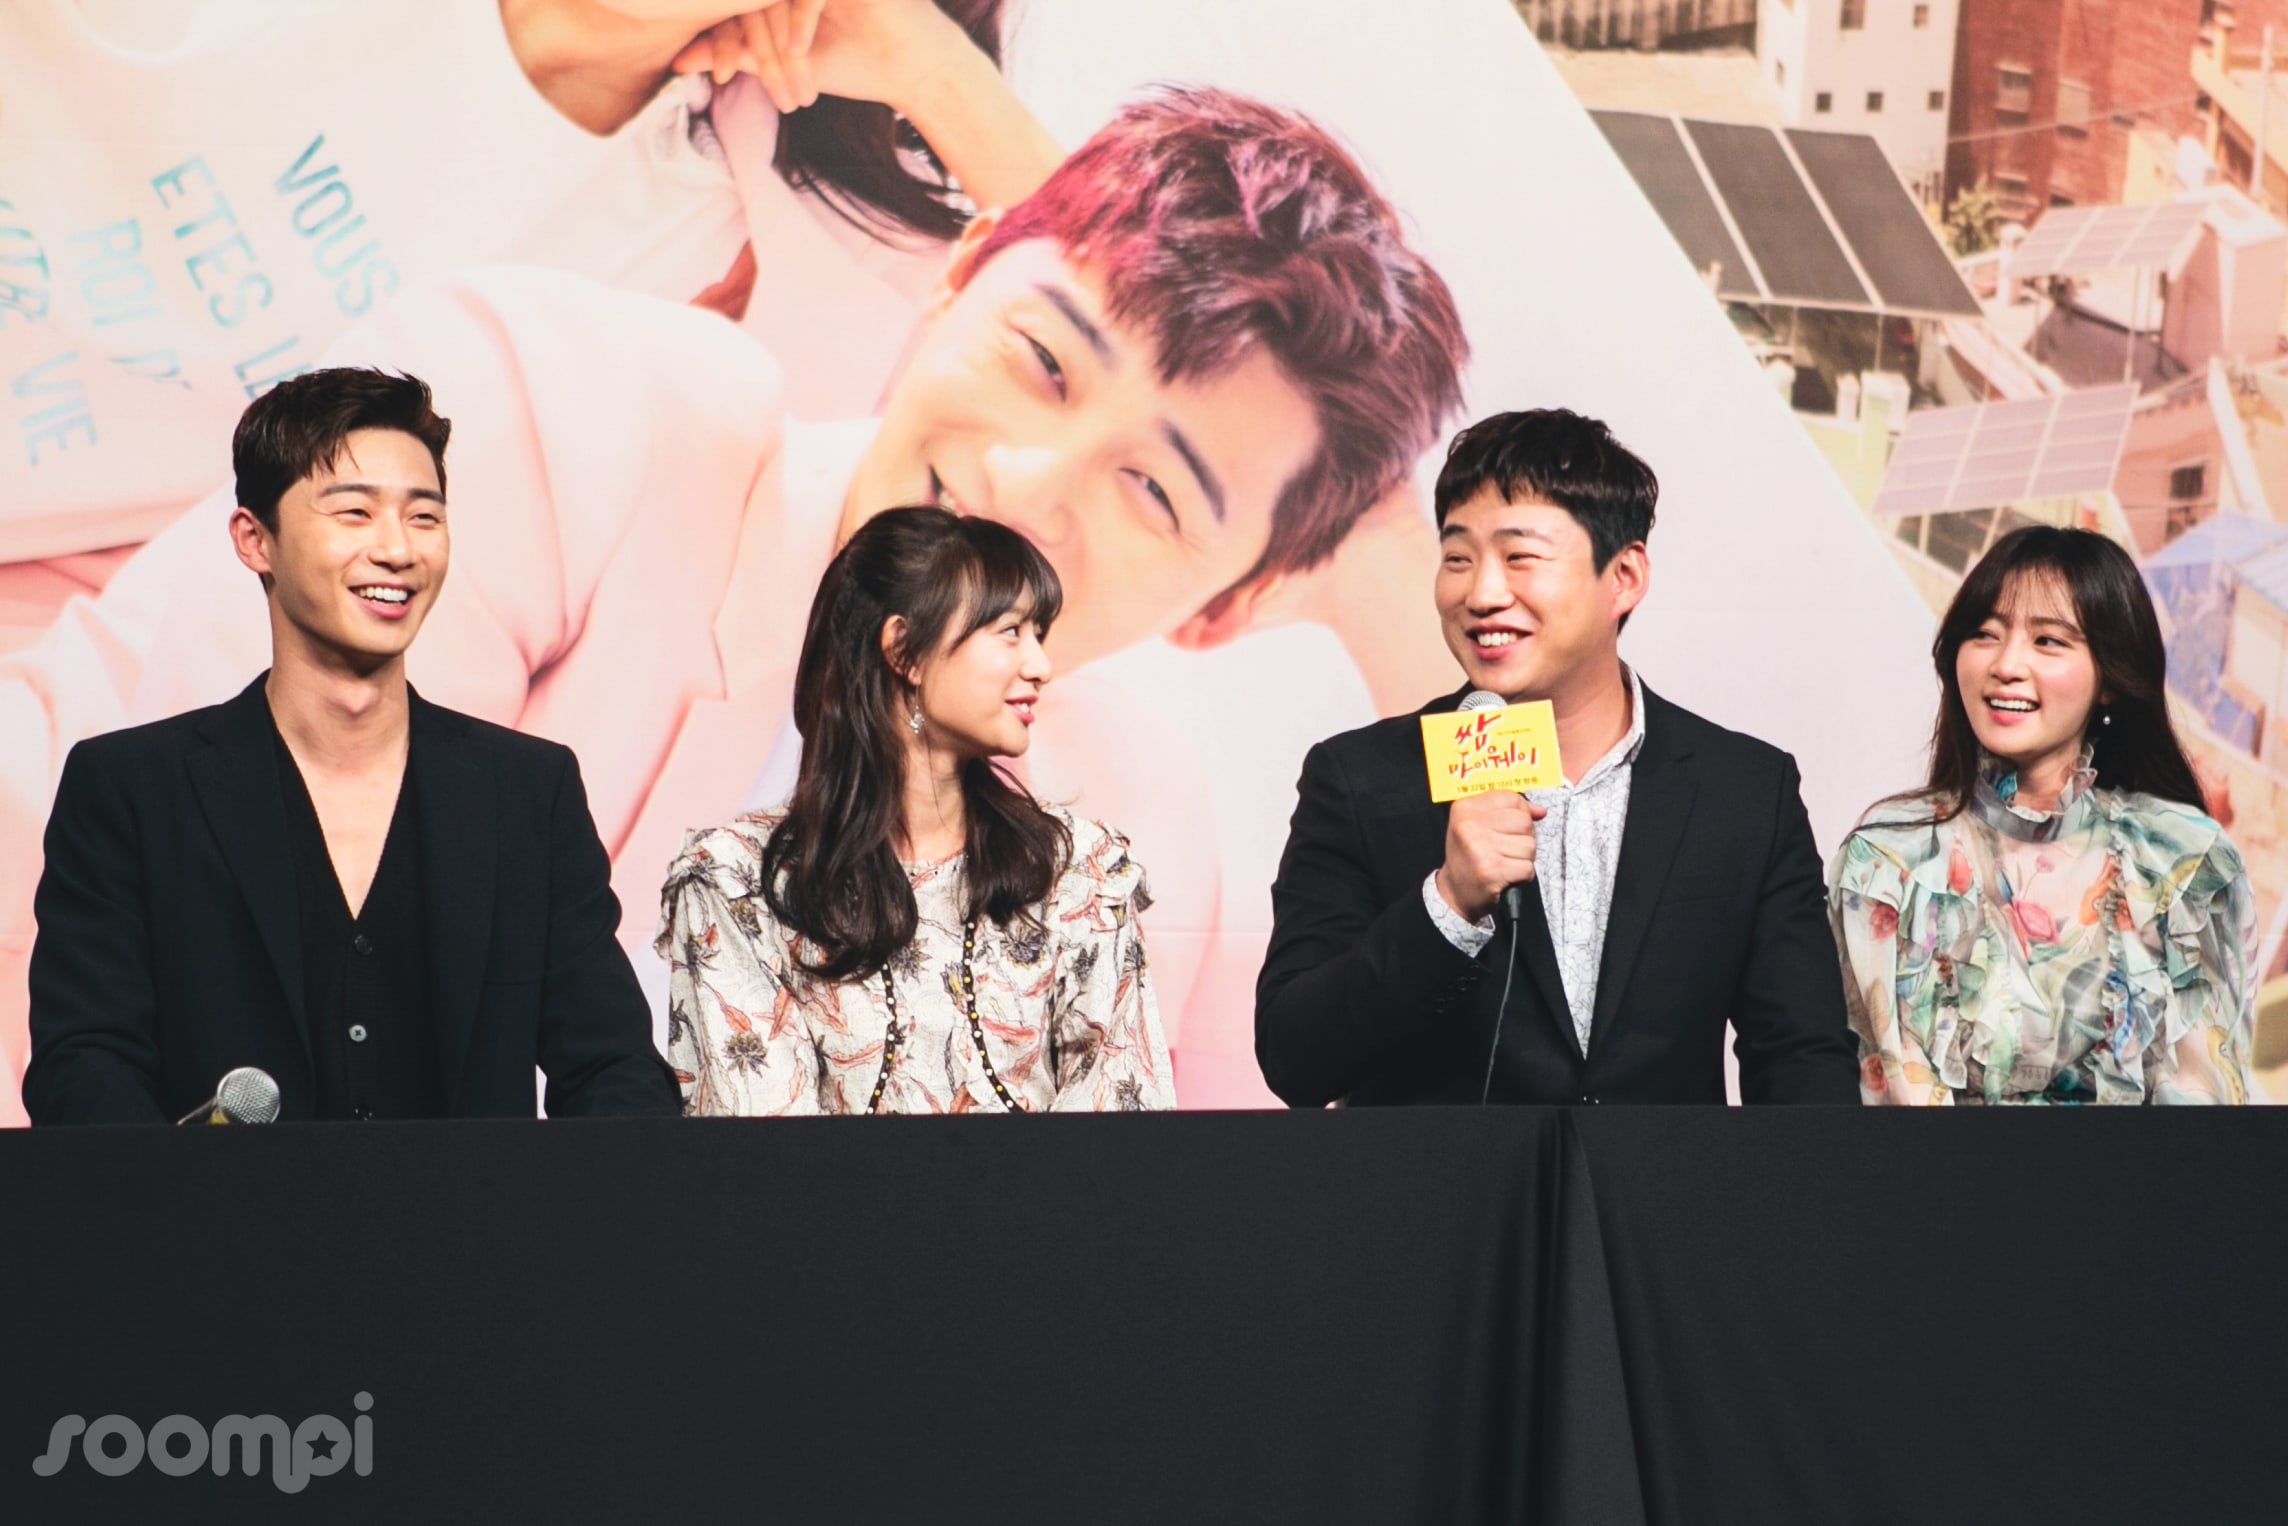 Cast And Crew Of KBS 2TVs Fight My Way Confirmed To Be Going On Well-Deserved Reward Vacation